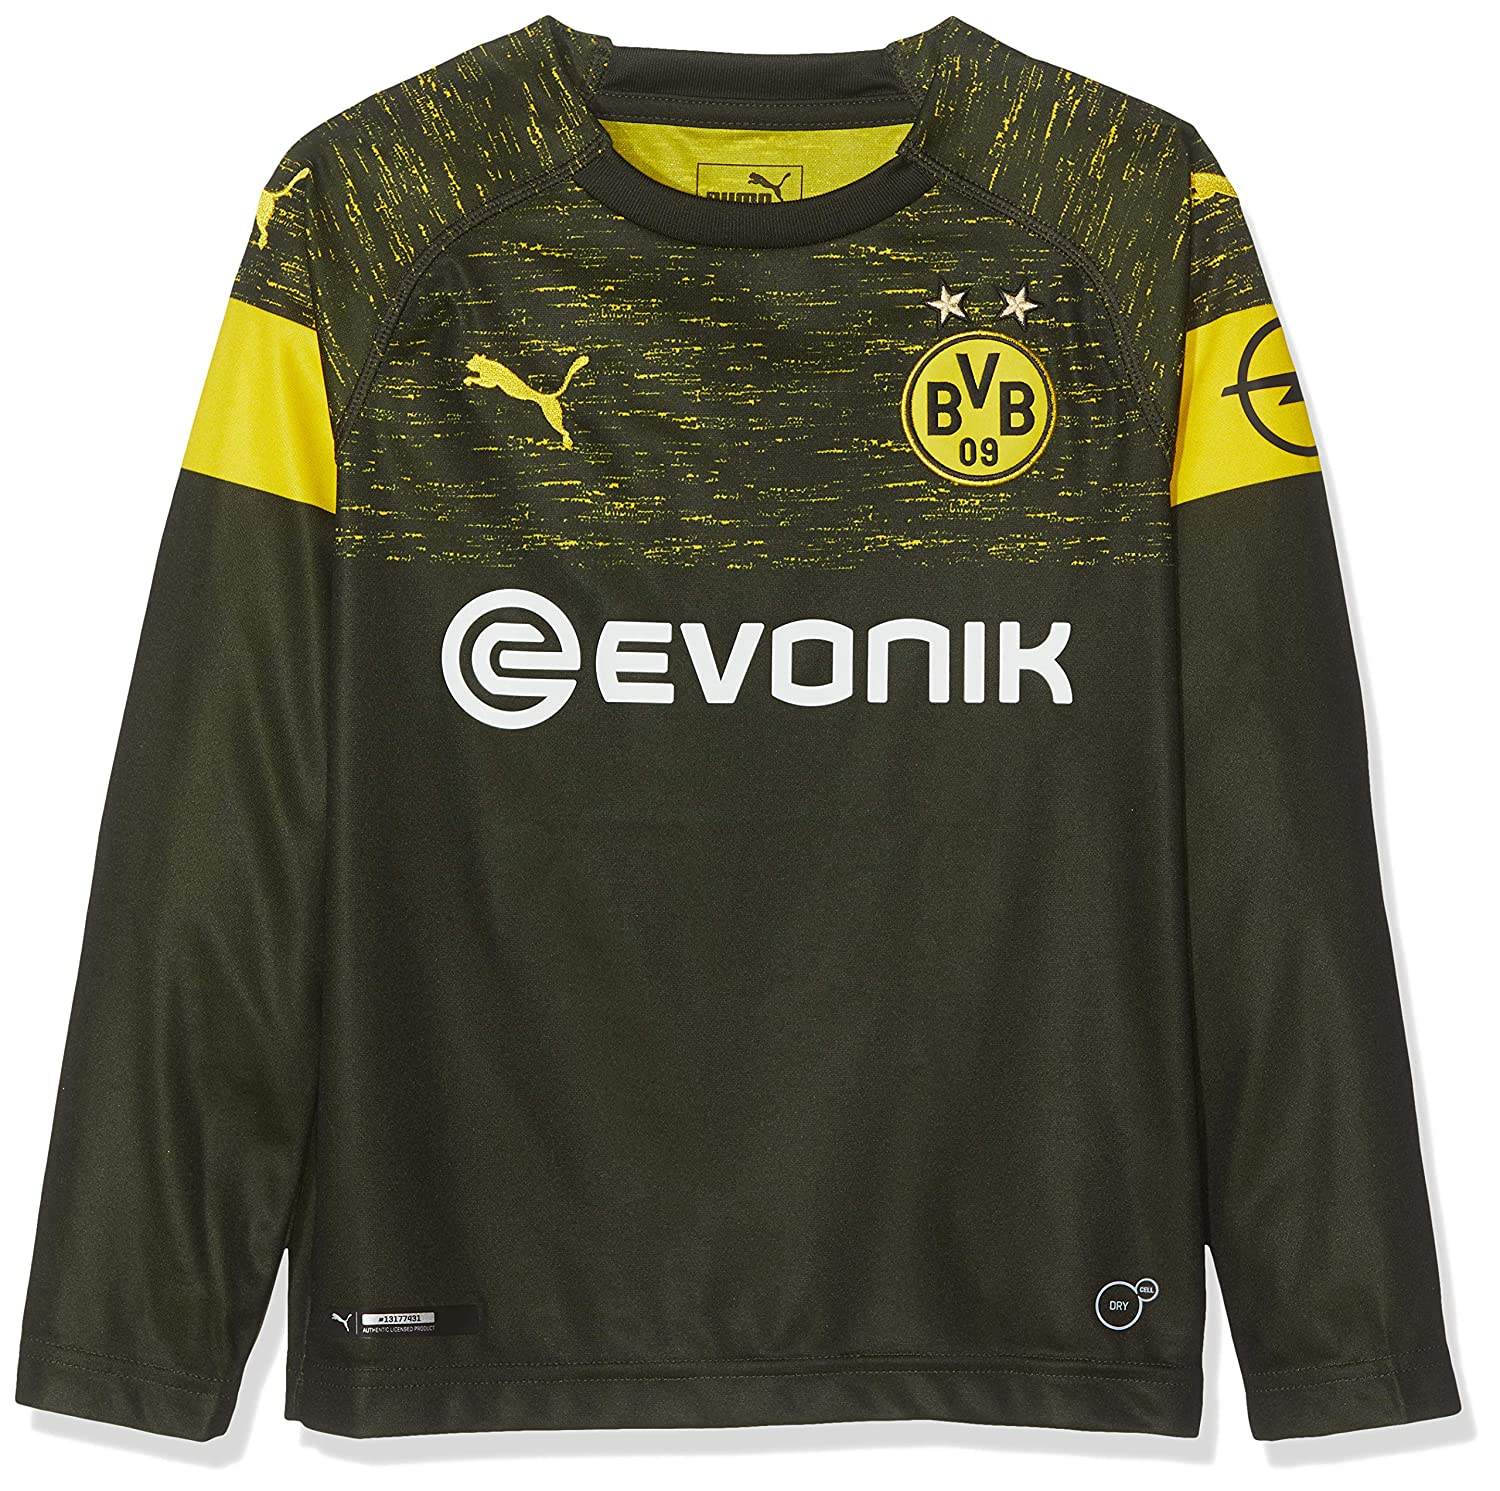 sale retailer 0edec 05499 Amazon.com : PUMA 2018-2019 Borussia Dortmund Long Sleeve ...